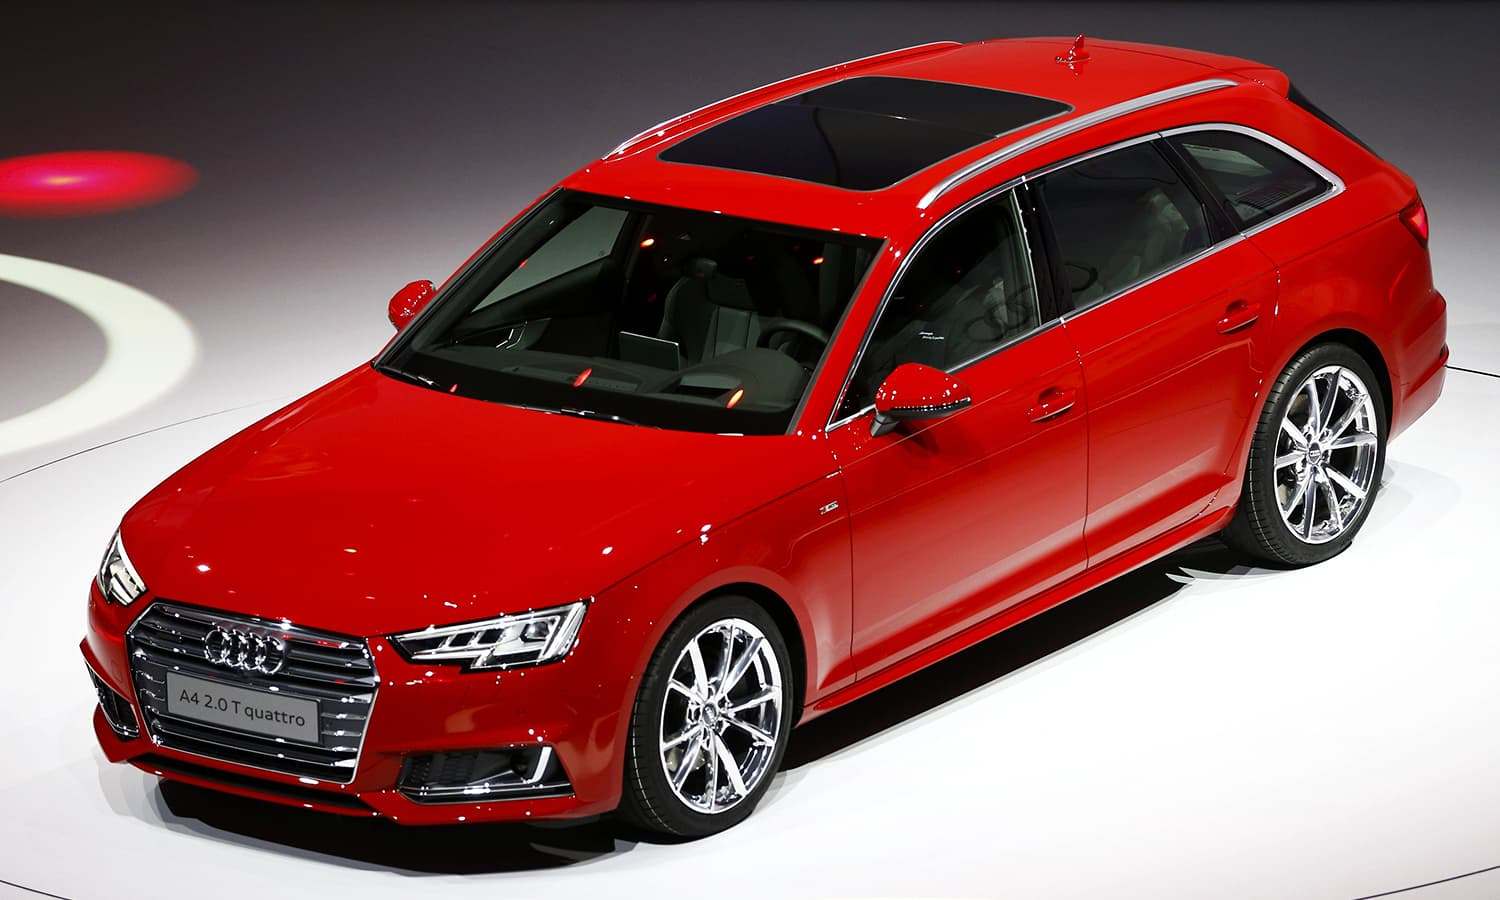 The new Audi A4 2.0 T quattro is presented during the Volkswagen group night. ─ Reuters